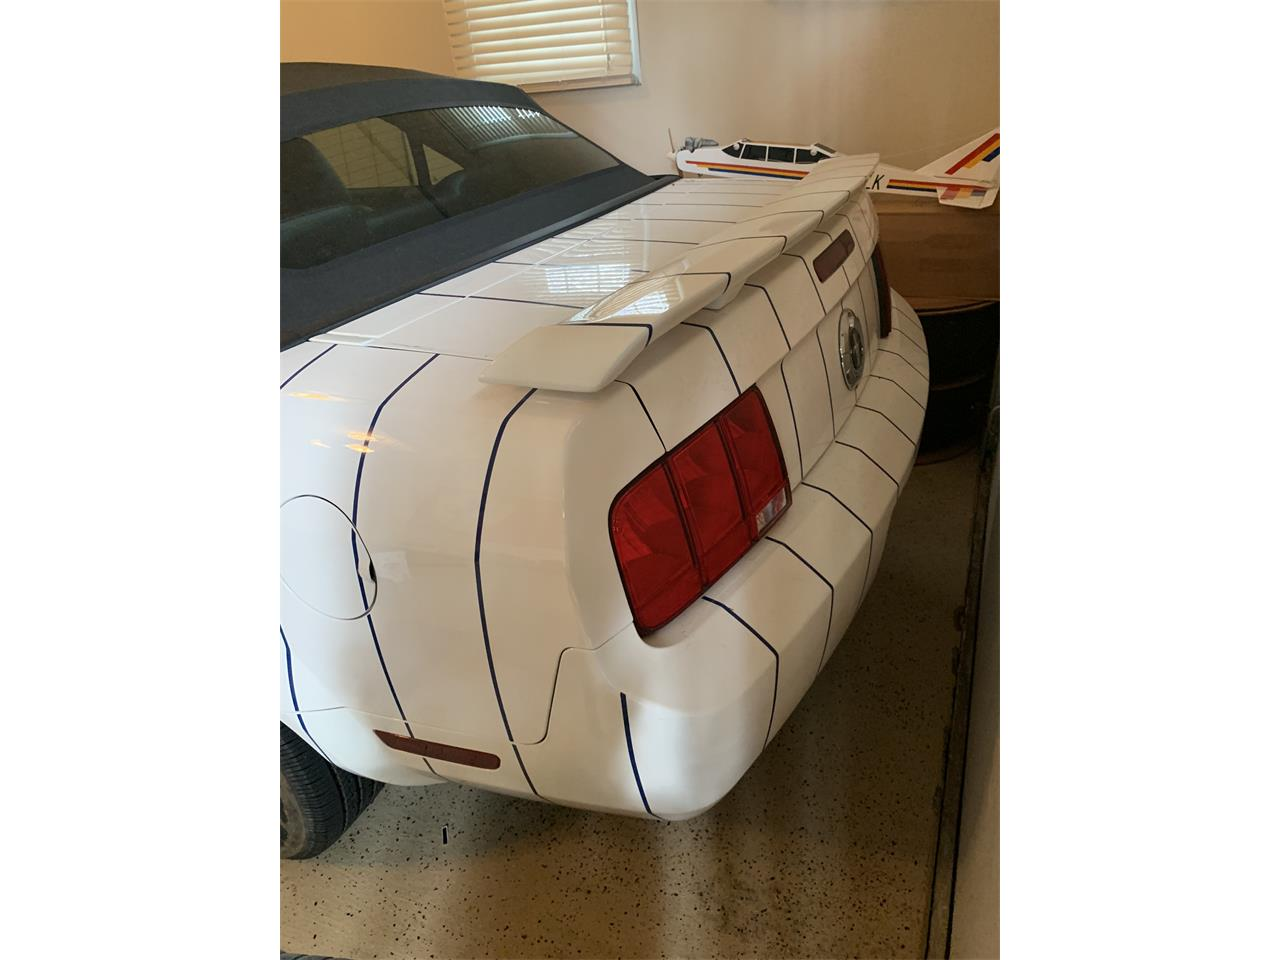 2005 Ford Mustang (CC-1302227) for sale in Manhasset, New York